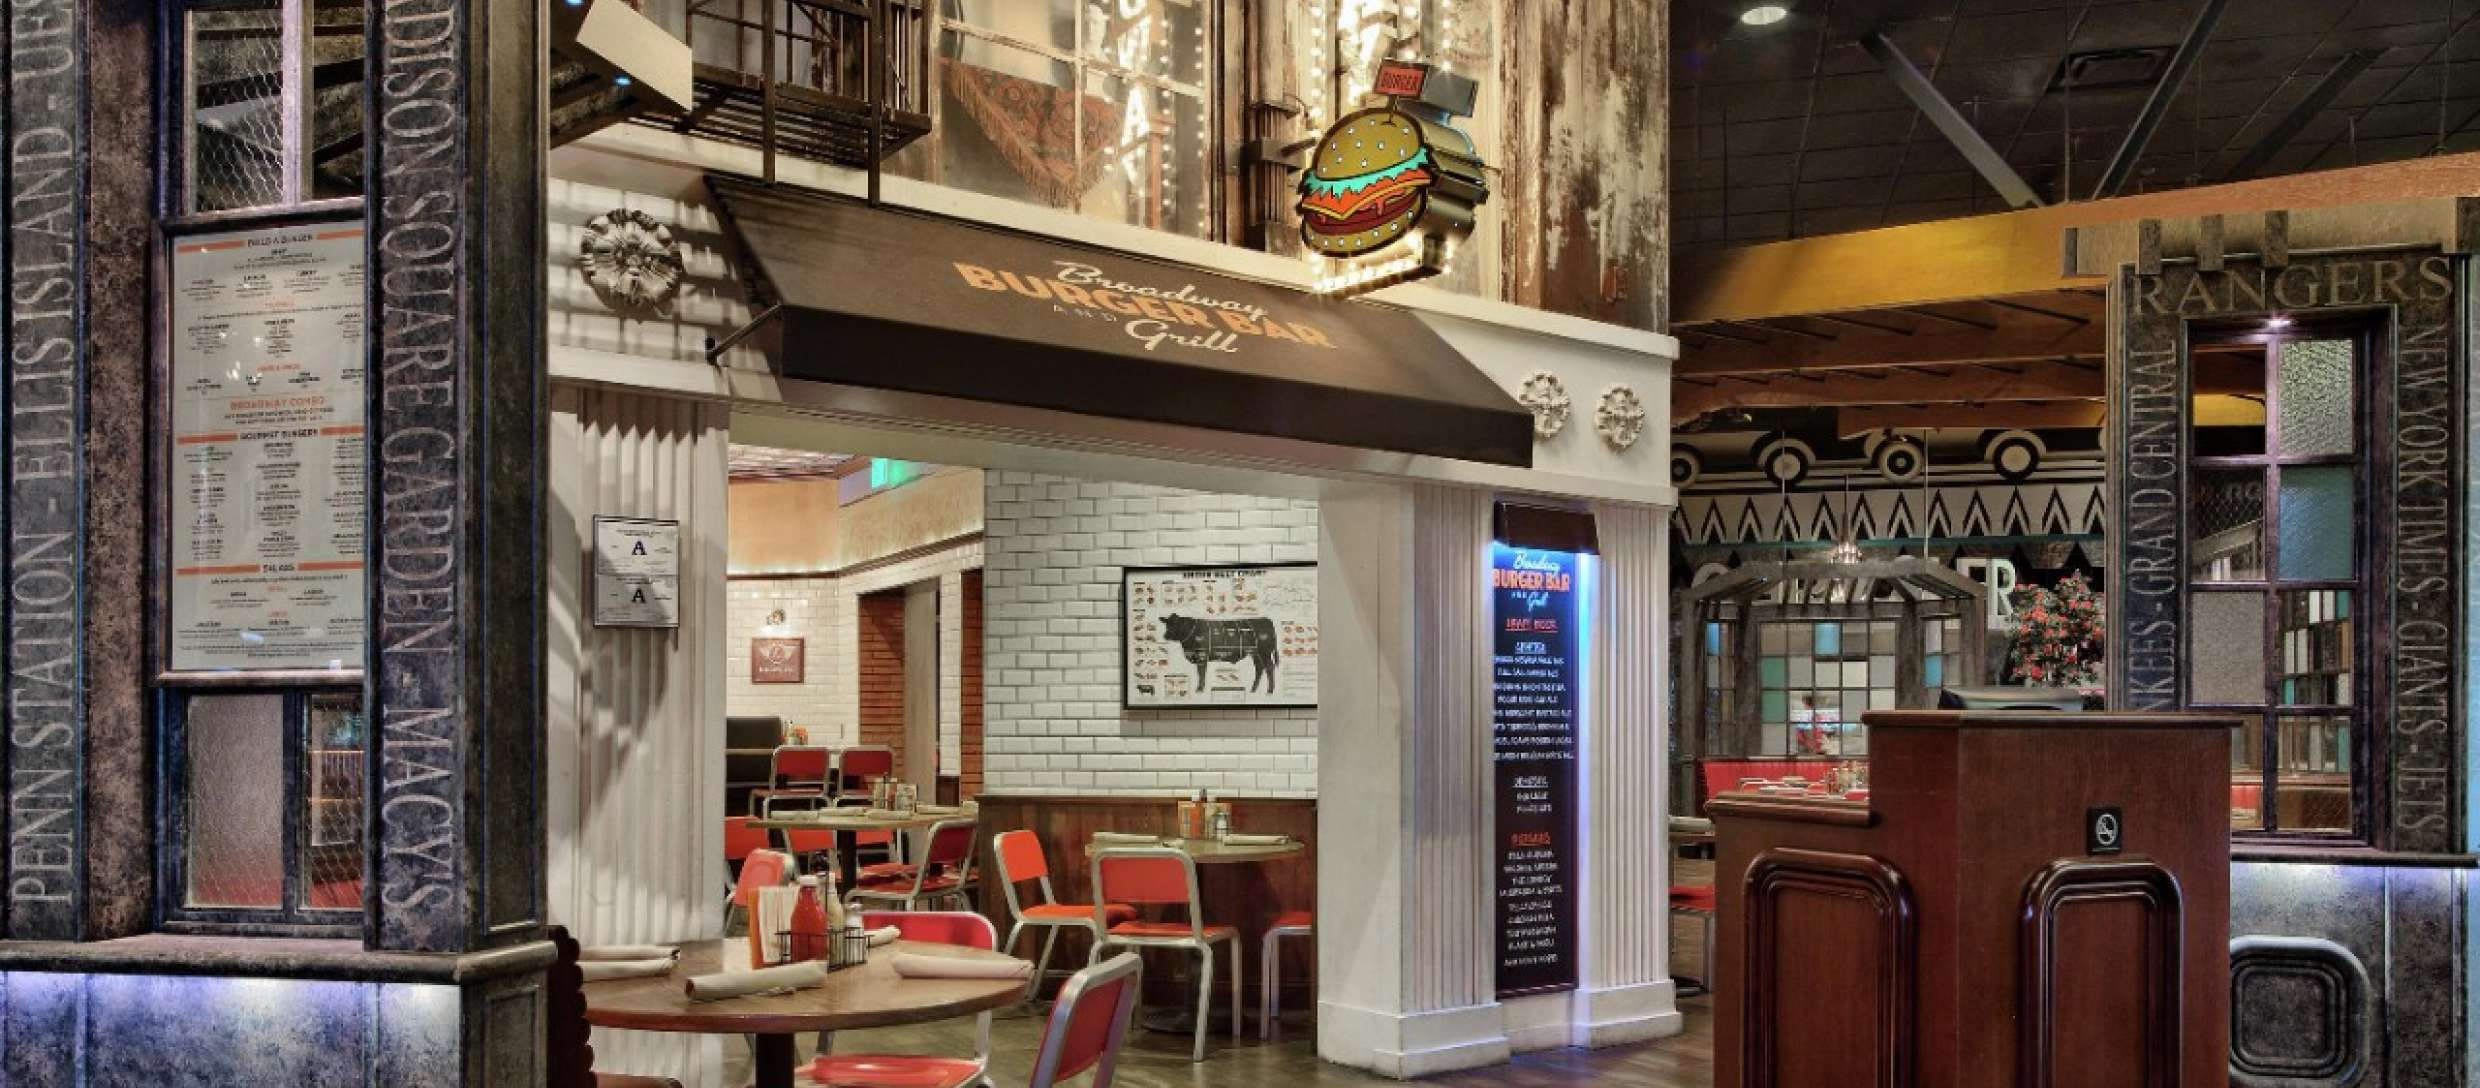 The front entrance to Broadway Burger, restaurant brand developed by Canyon Creative